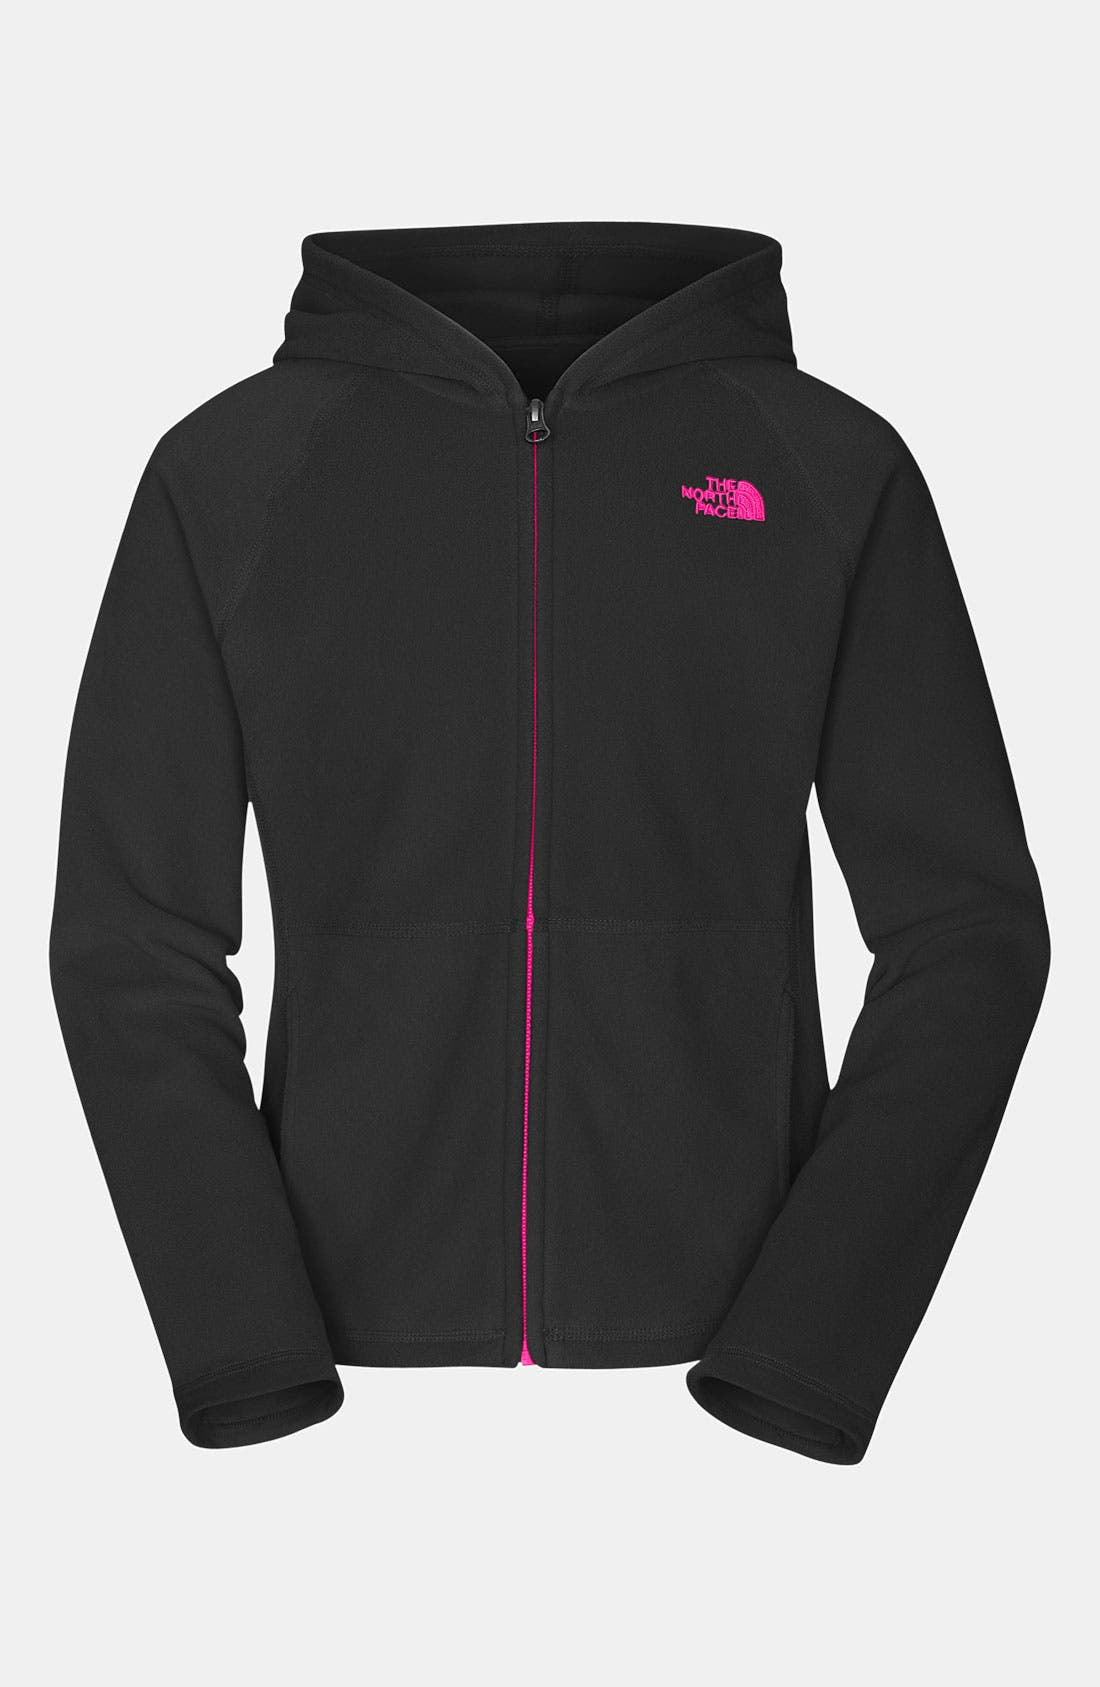 Main Image - The North Face 'Glacier' Full Zip Hoodie (Little Girls)